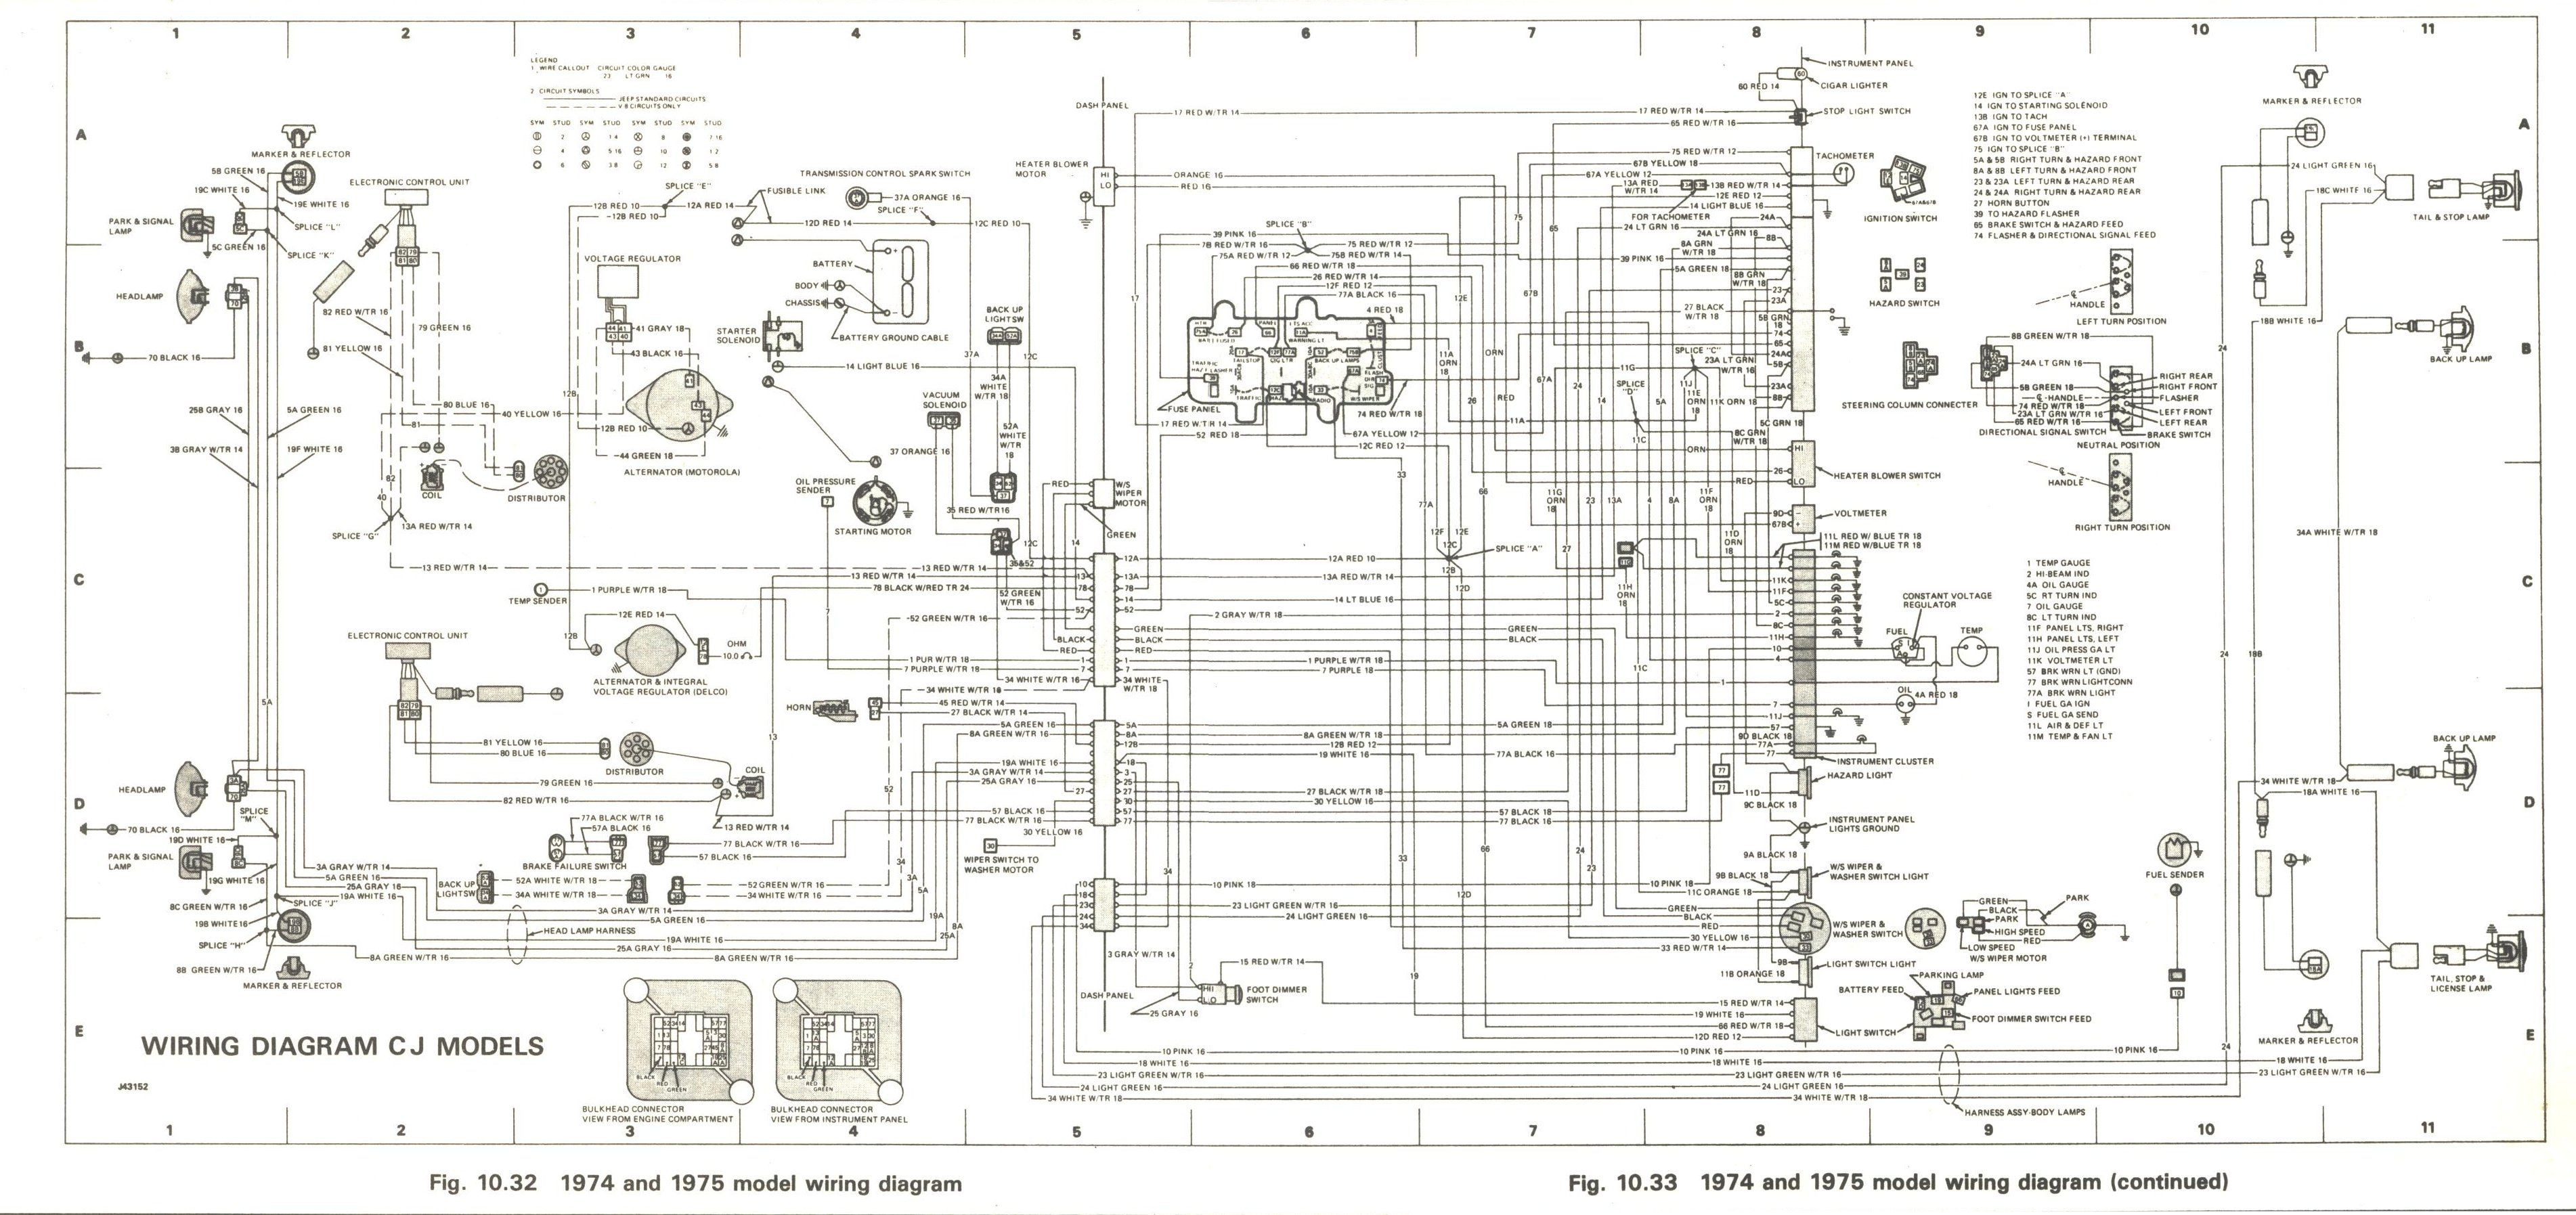 1980 cj5 wiring diagram furthermore jeep cj7 tachometer wiring kaiser jeep wiring 1980 cj5 wiring diagram [ 3805 x 1795 Pixel ]